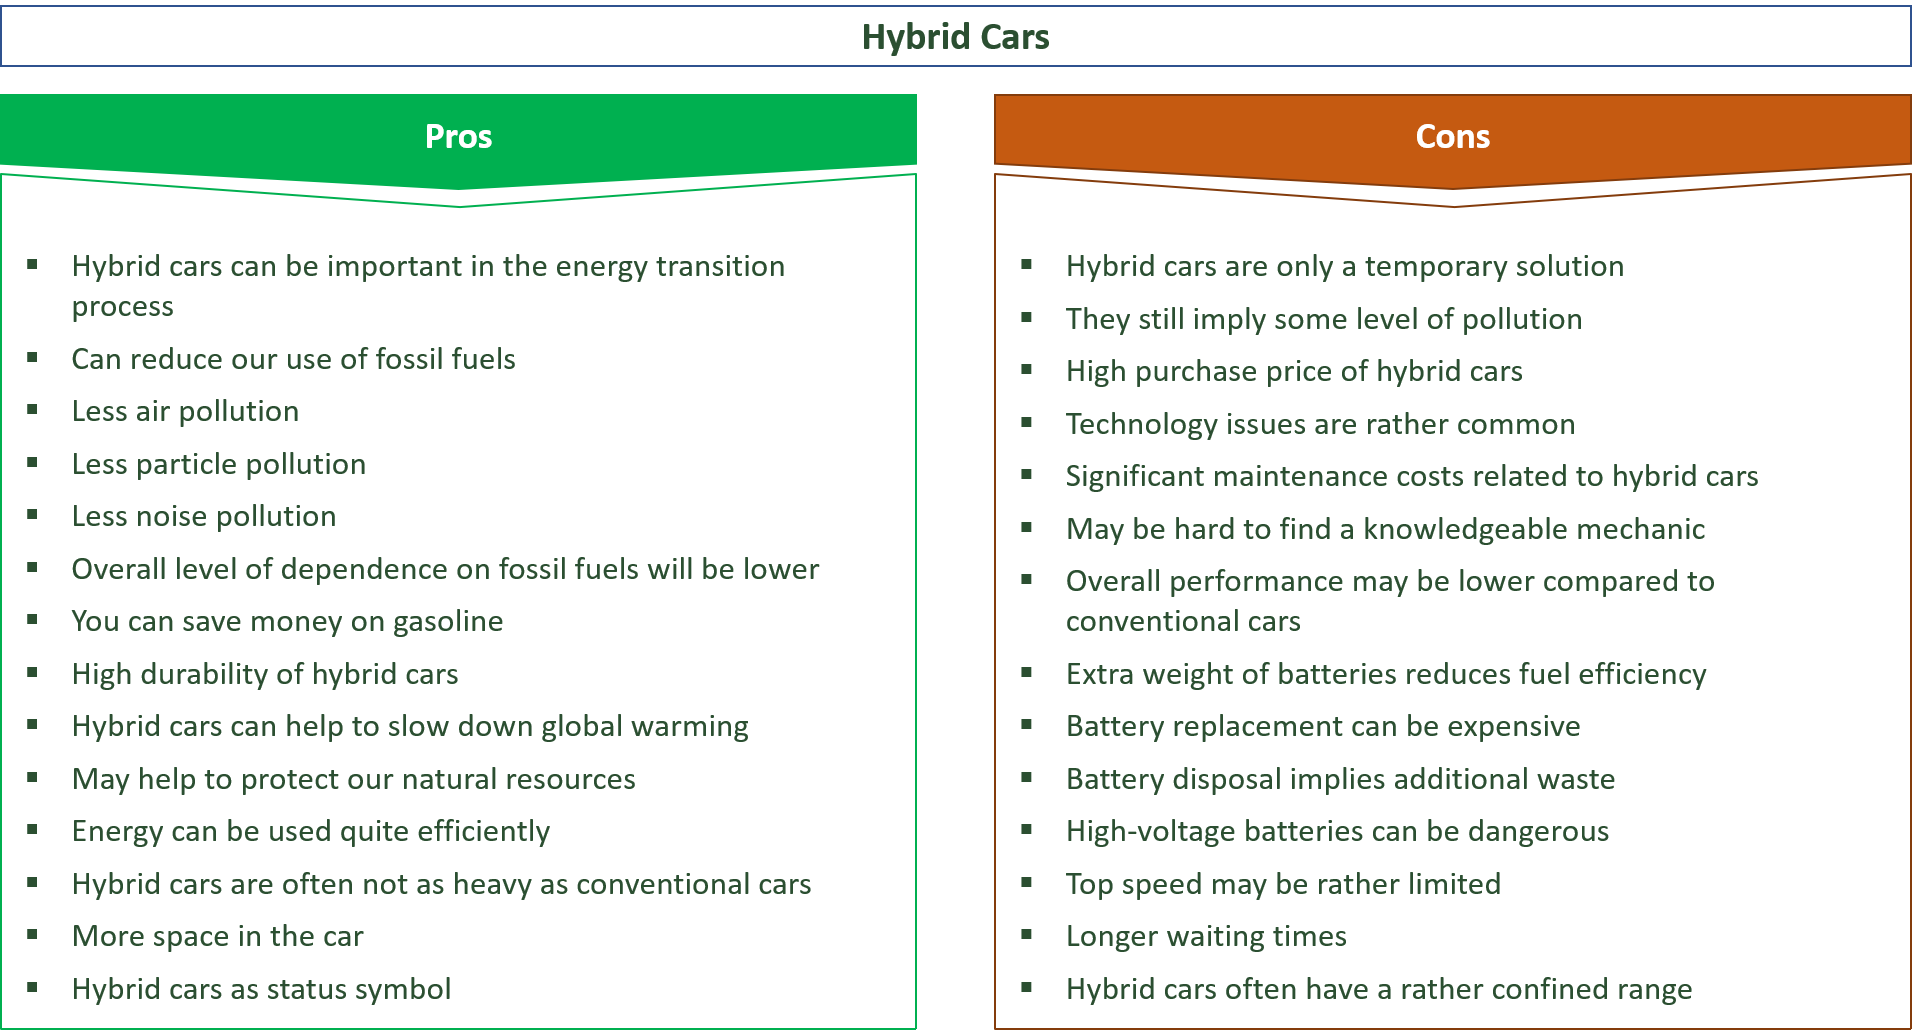 advantages and disadvantages of hybrid cars